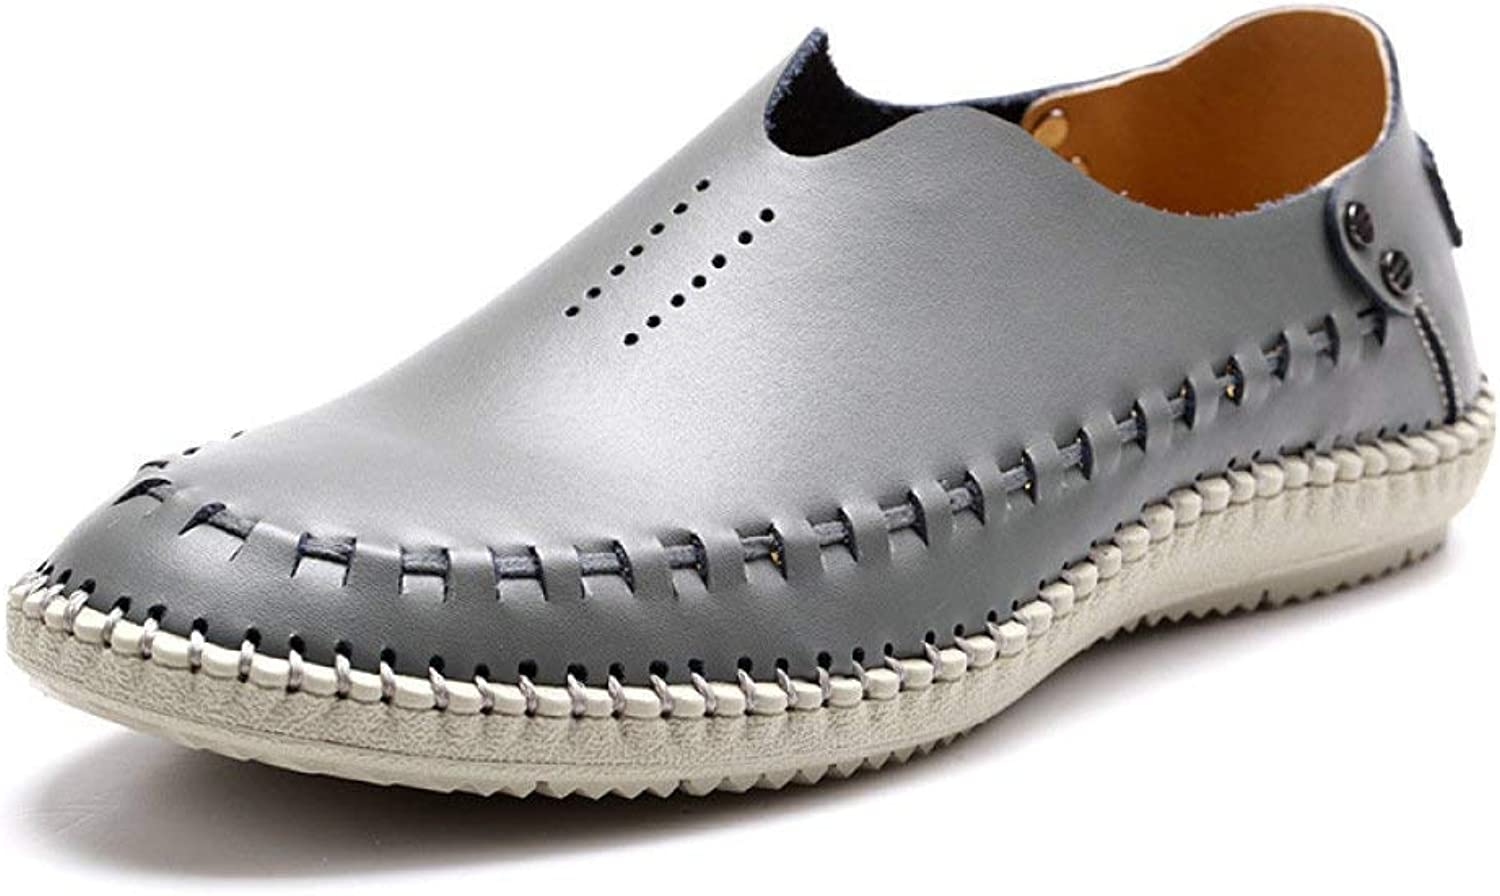 Fuxitoggo Summer New Men's Casual shoes Hollow Breathable Punch Leather Sandals Men's First Layer Of Leather (color   Grey, Size   42)